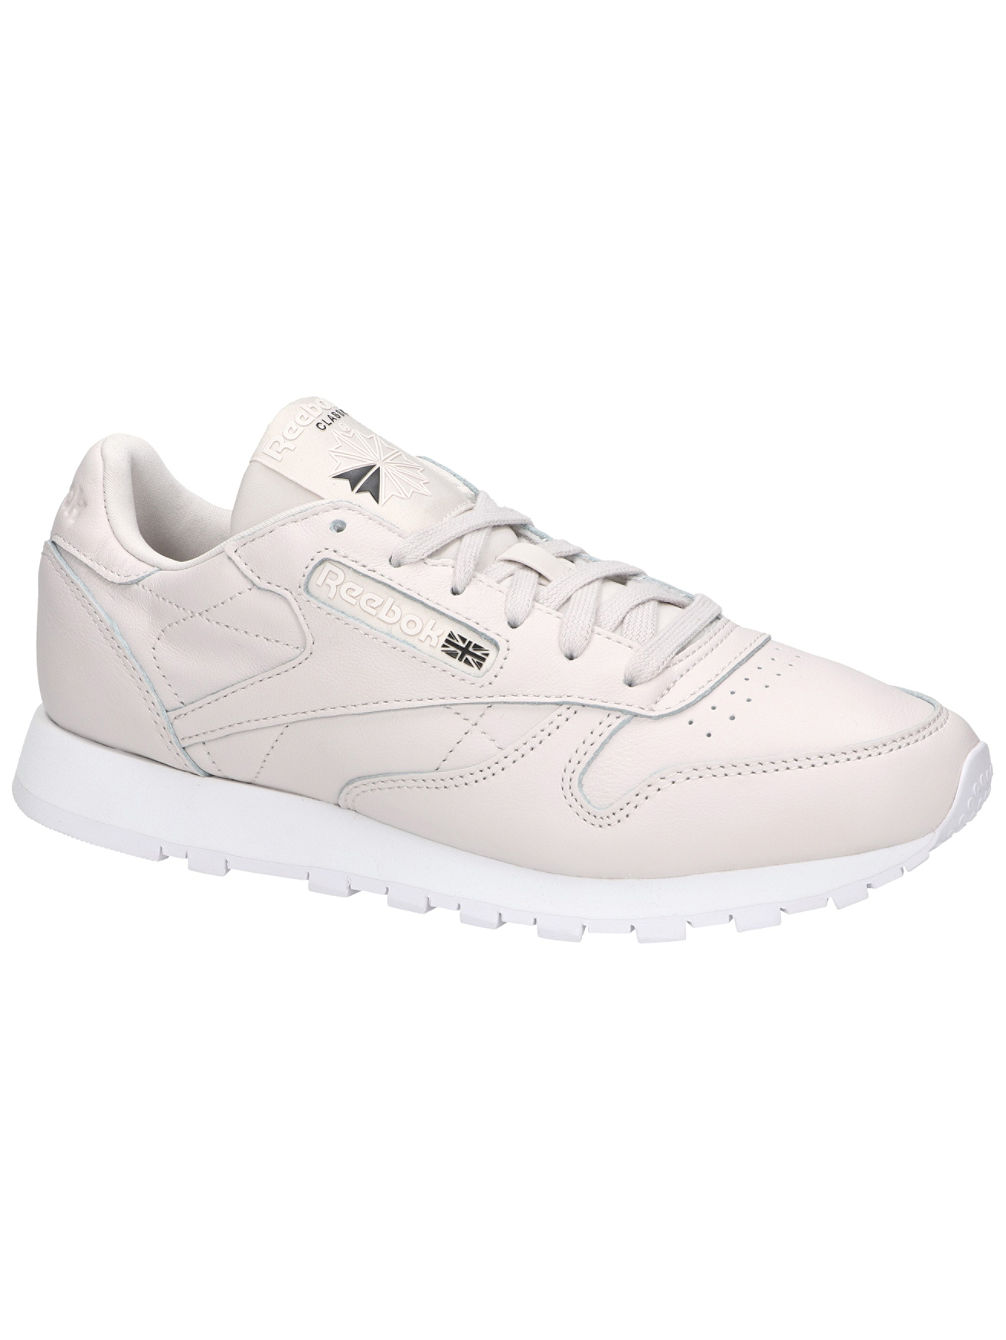 4020b71194d Buy Reebok Classic Leather x FACE Sneakers online at Blue Tomato